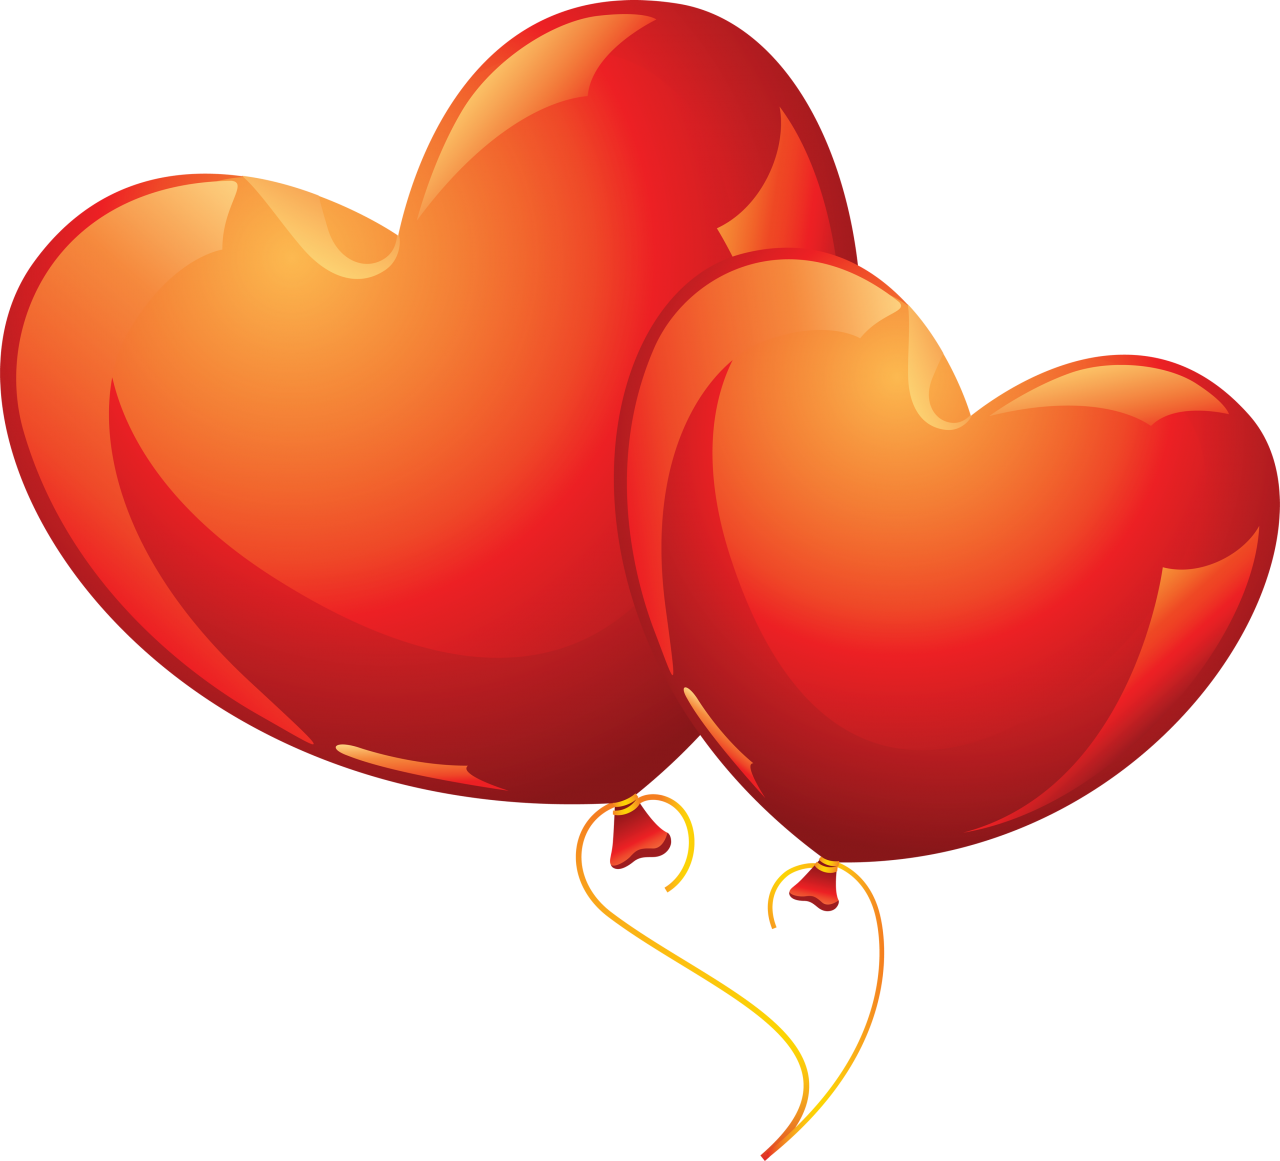 Heart Shaped Love Balloons PNG Image